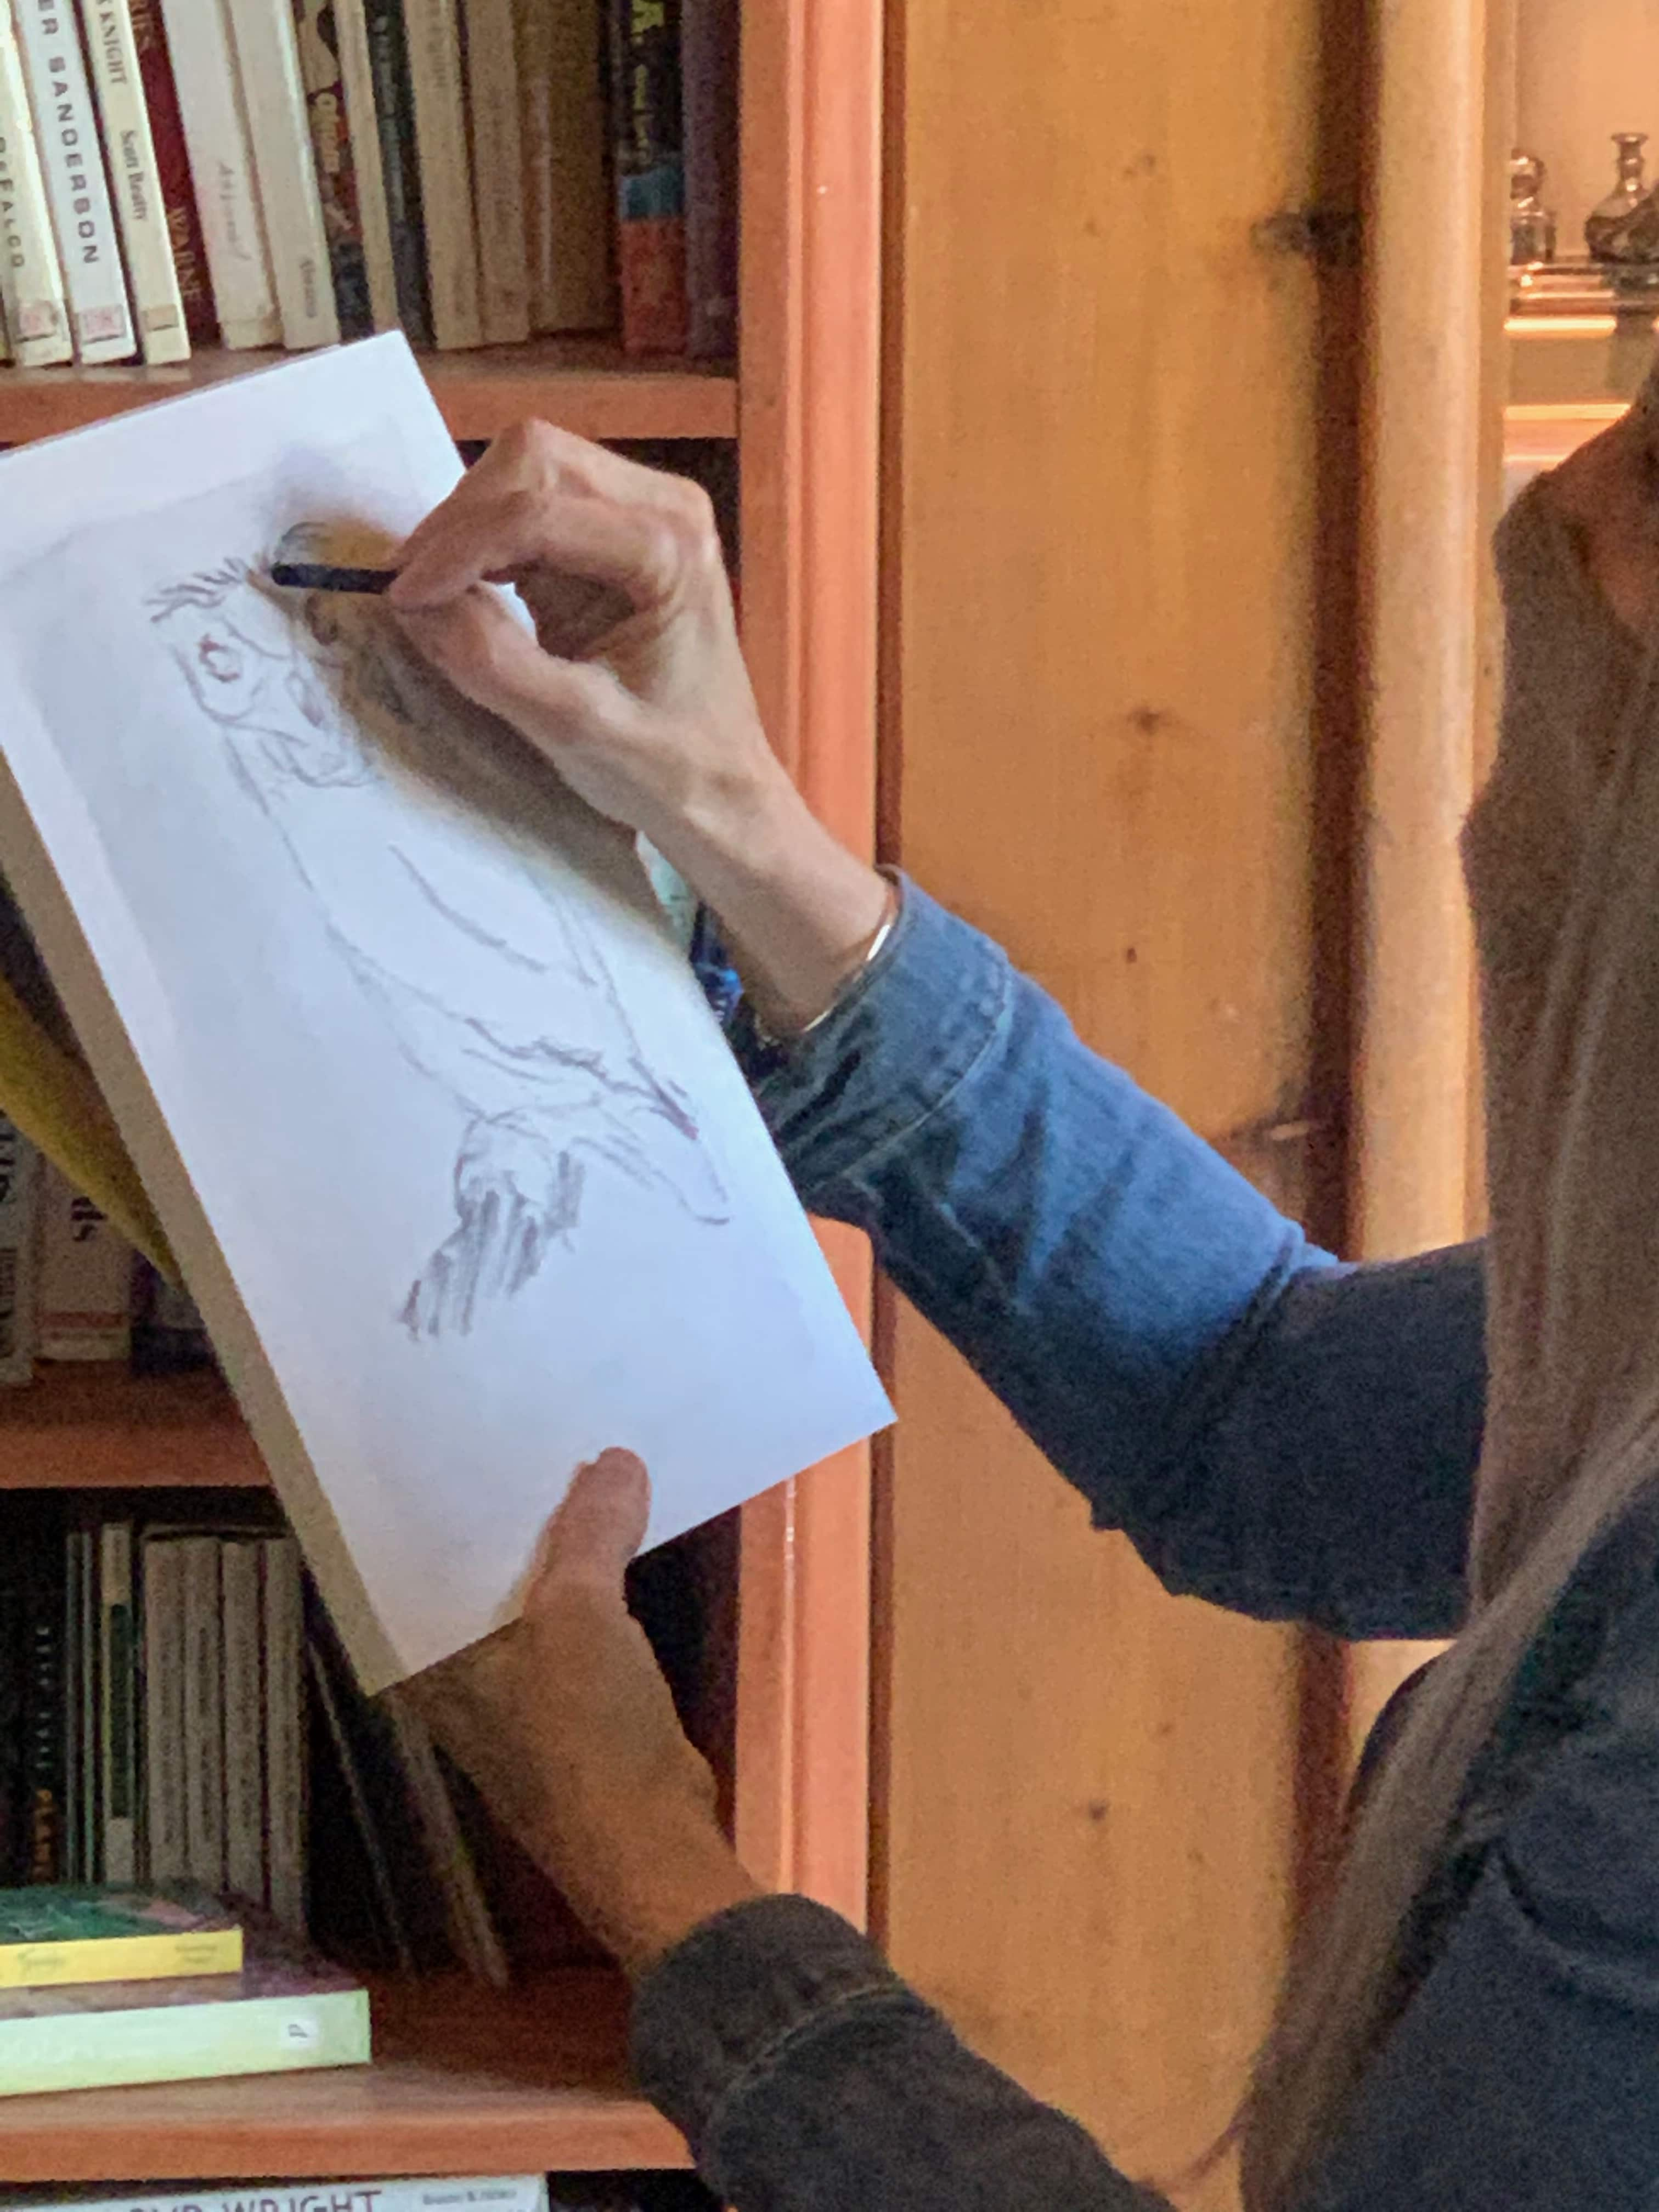 Pastimes students safely sketch Ollie the Eurasian Eagle Owl